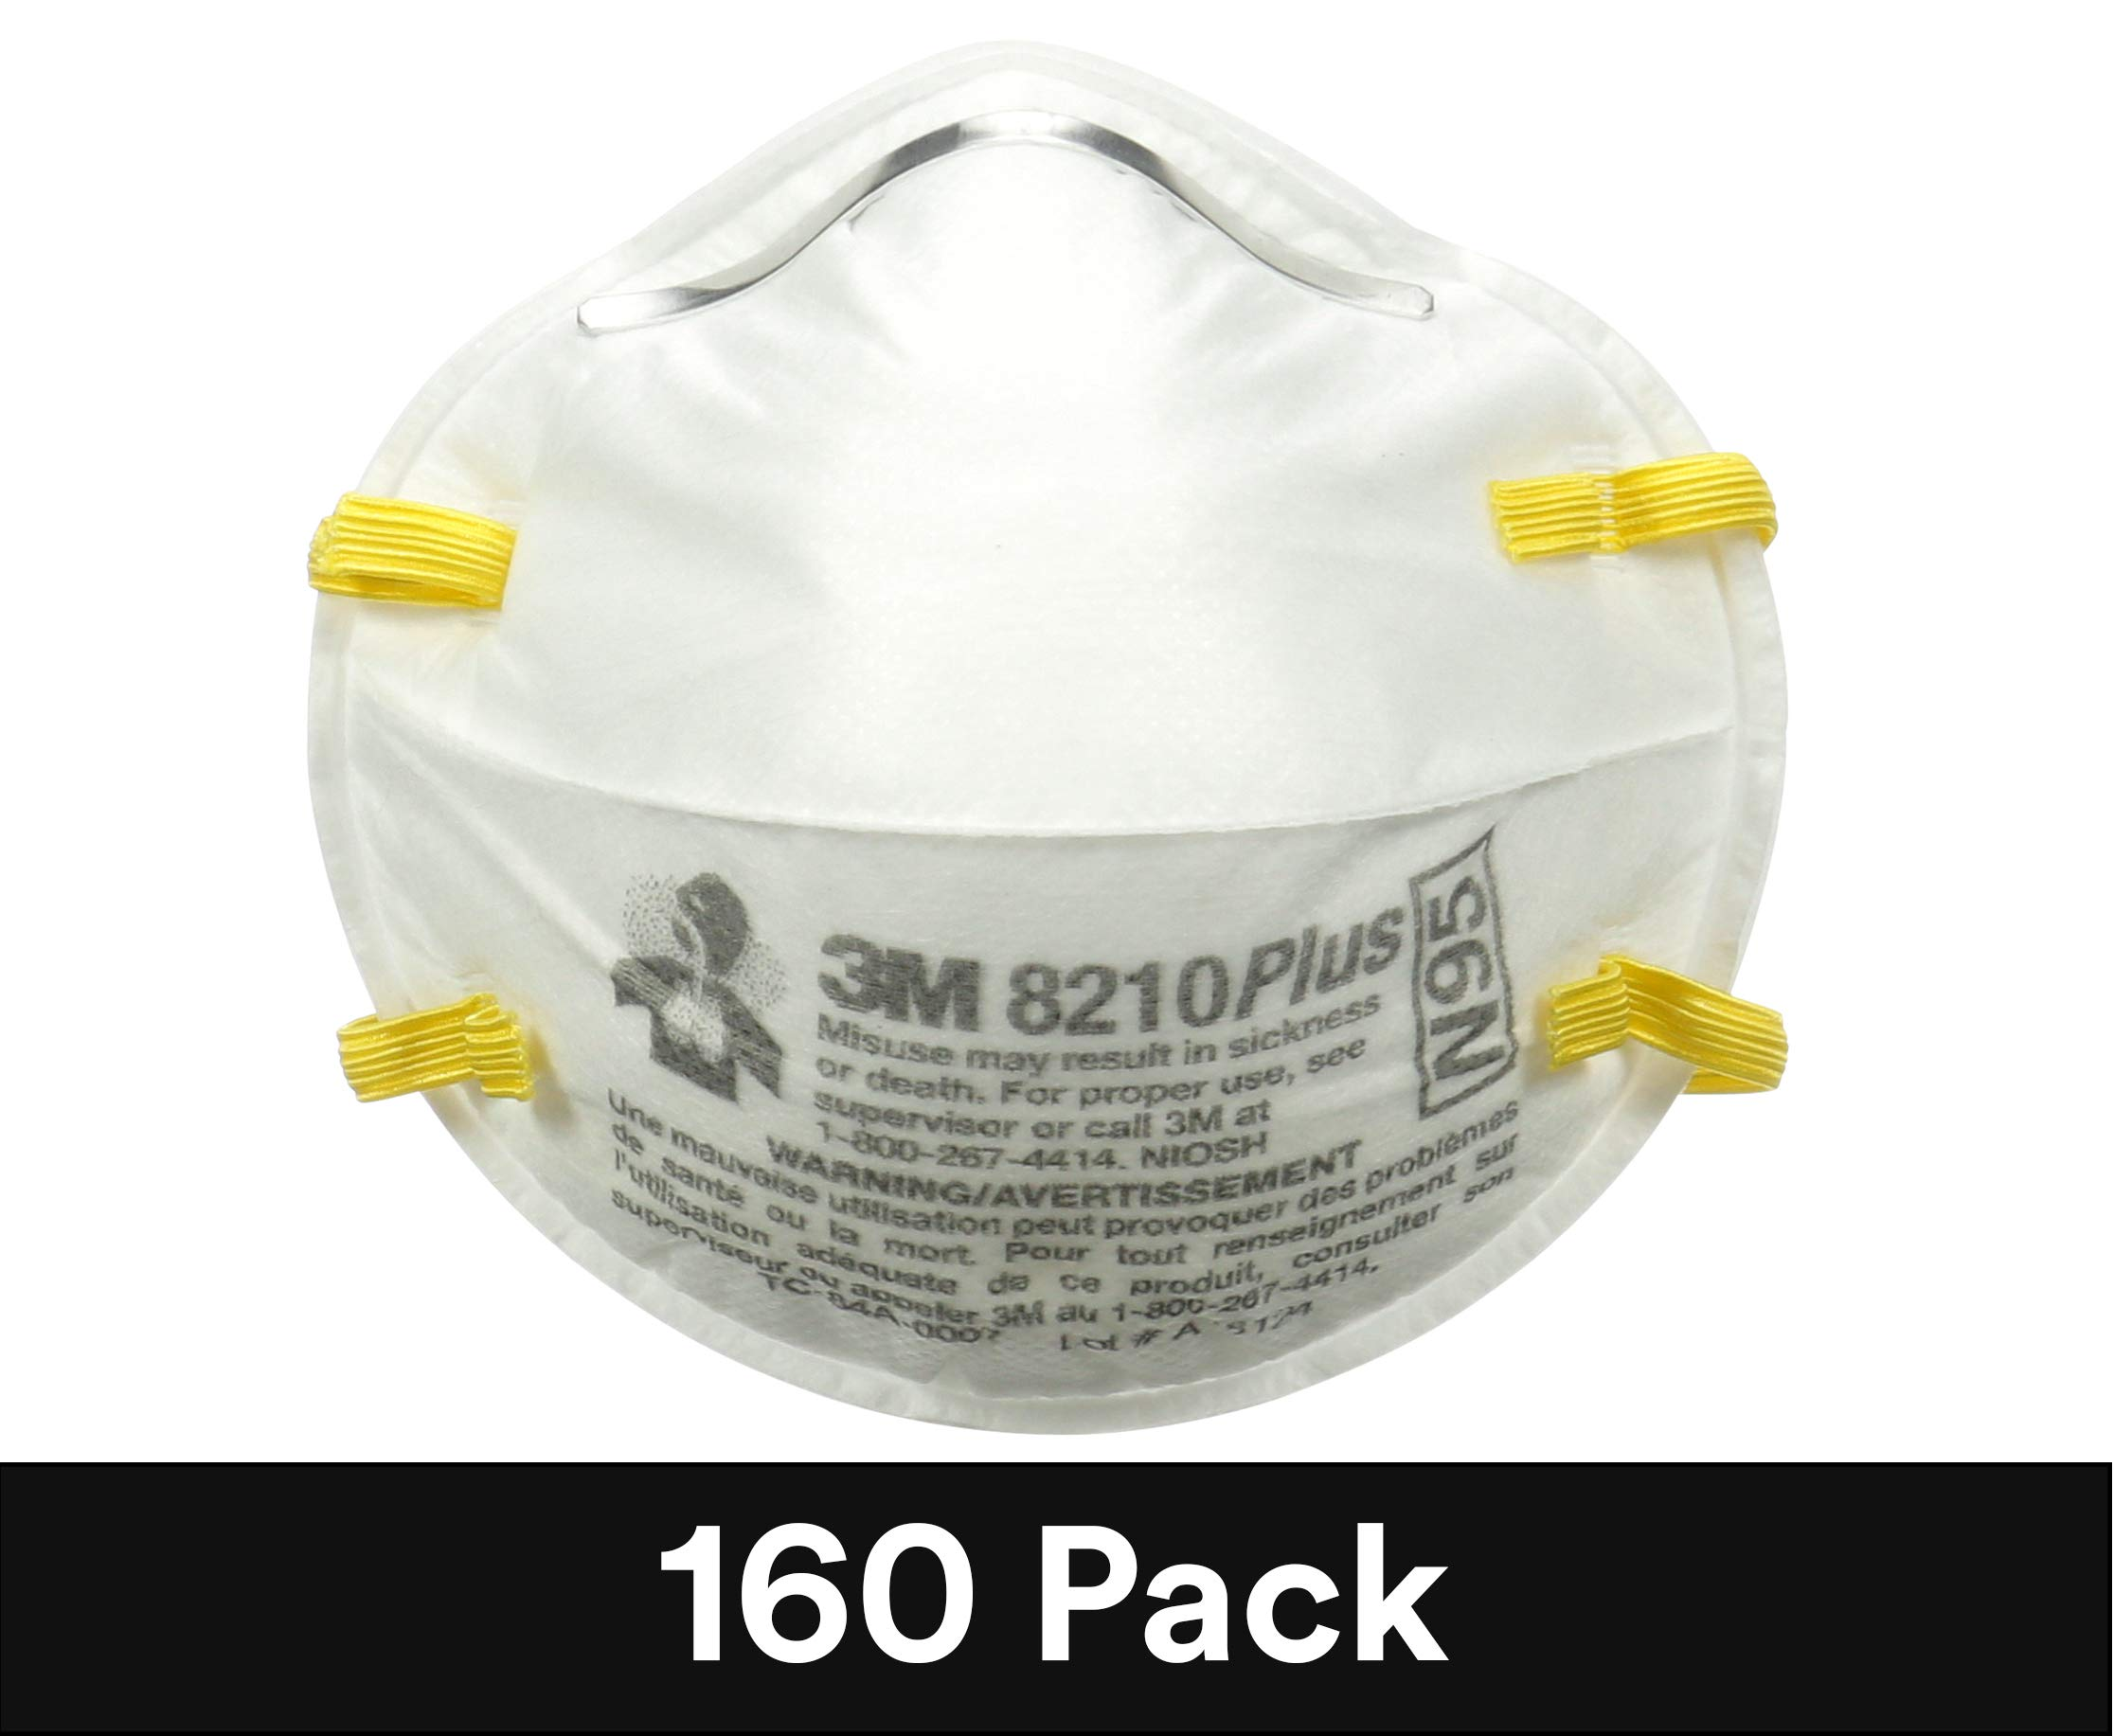 3M Particulate Respirator 8210Plus, N95, Smoke, Dust, Grinding, Sanding, Sawing, Sweeping, 160/Pack by 3M Personal Protective Equipment